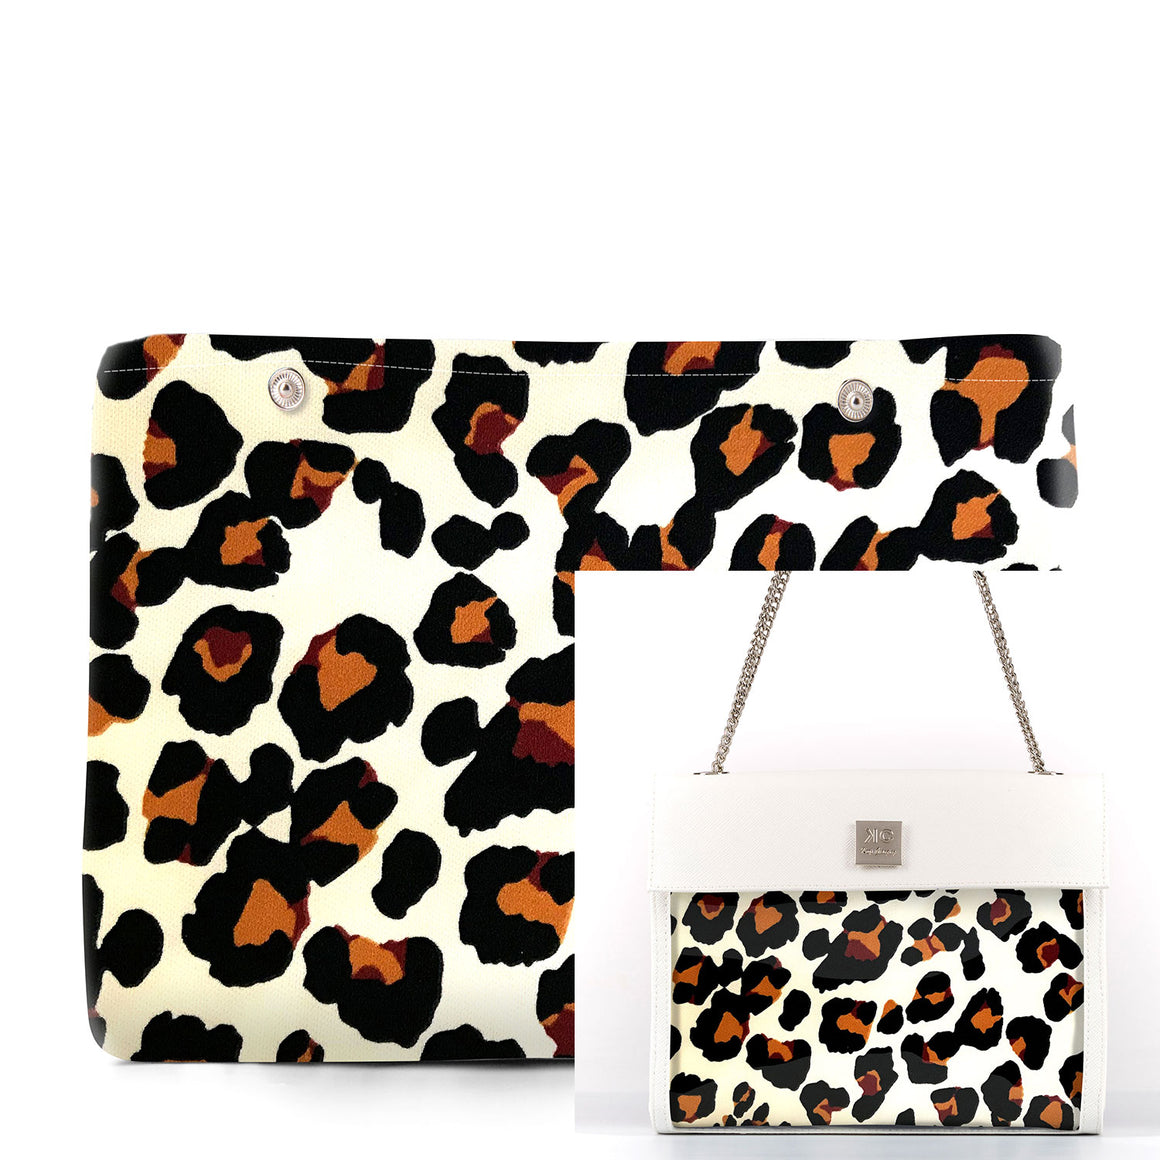 Leopard - Fabric Insert (Shoulder Bag)